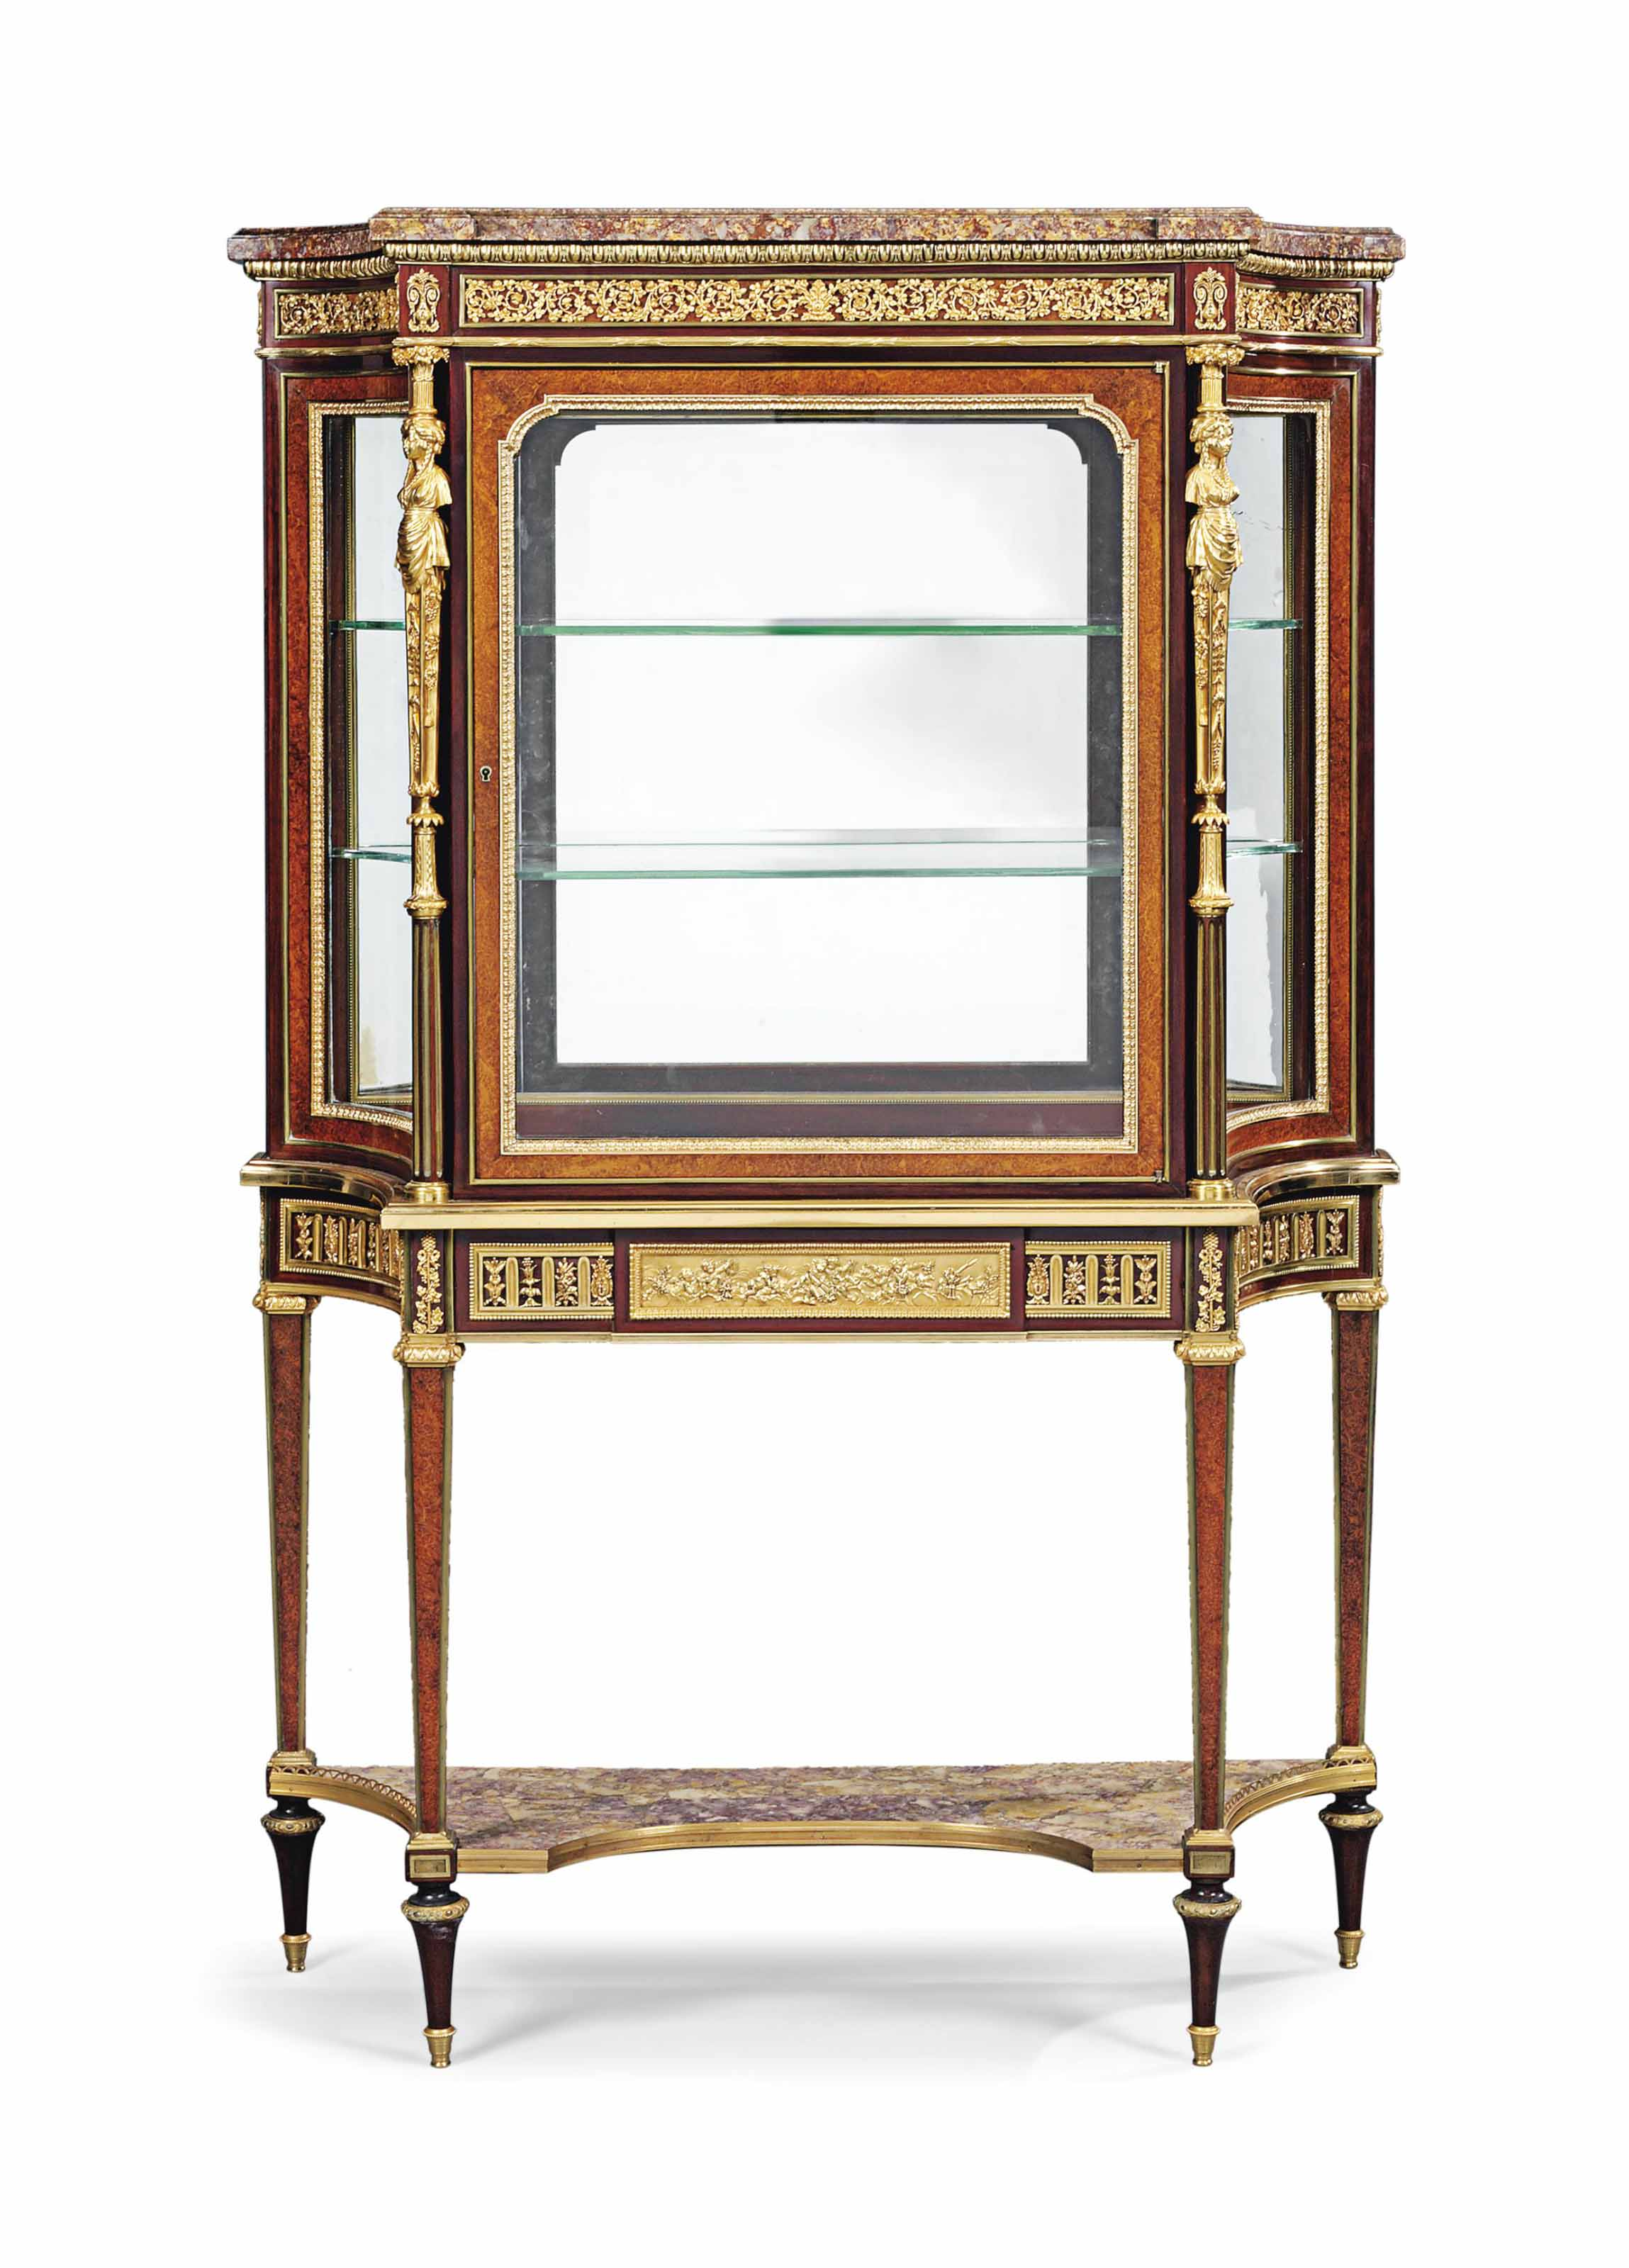 A FRENCH ORMOLU-MOUNTED MAHOGANY AND BURR AMBOYNA VITRINE CABINET